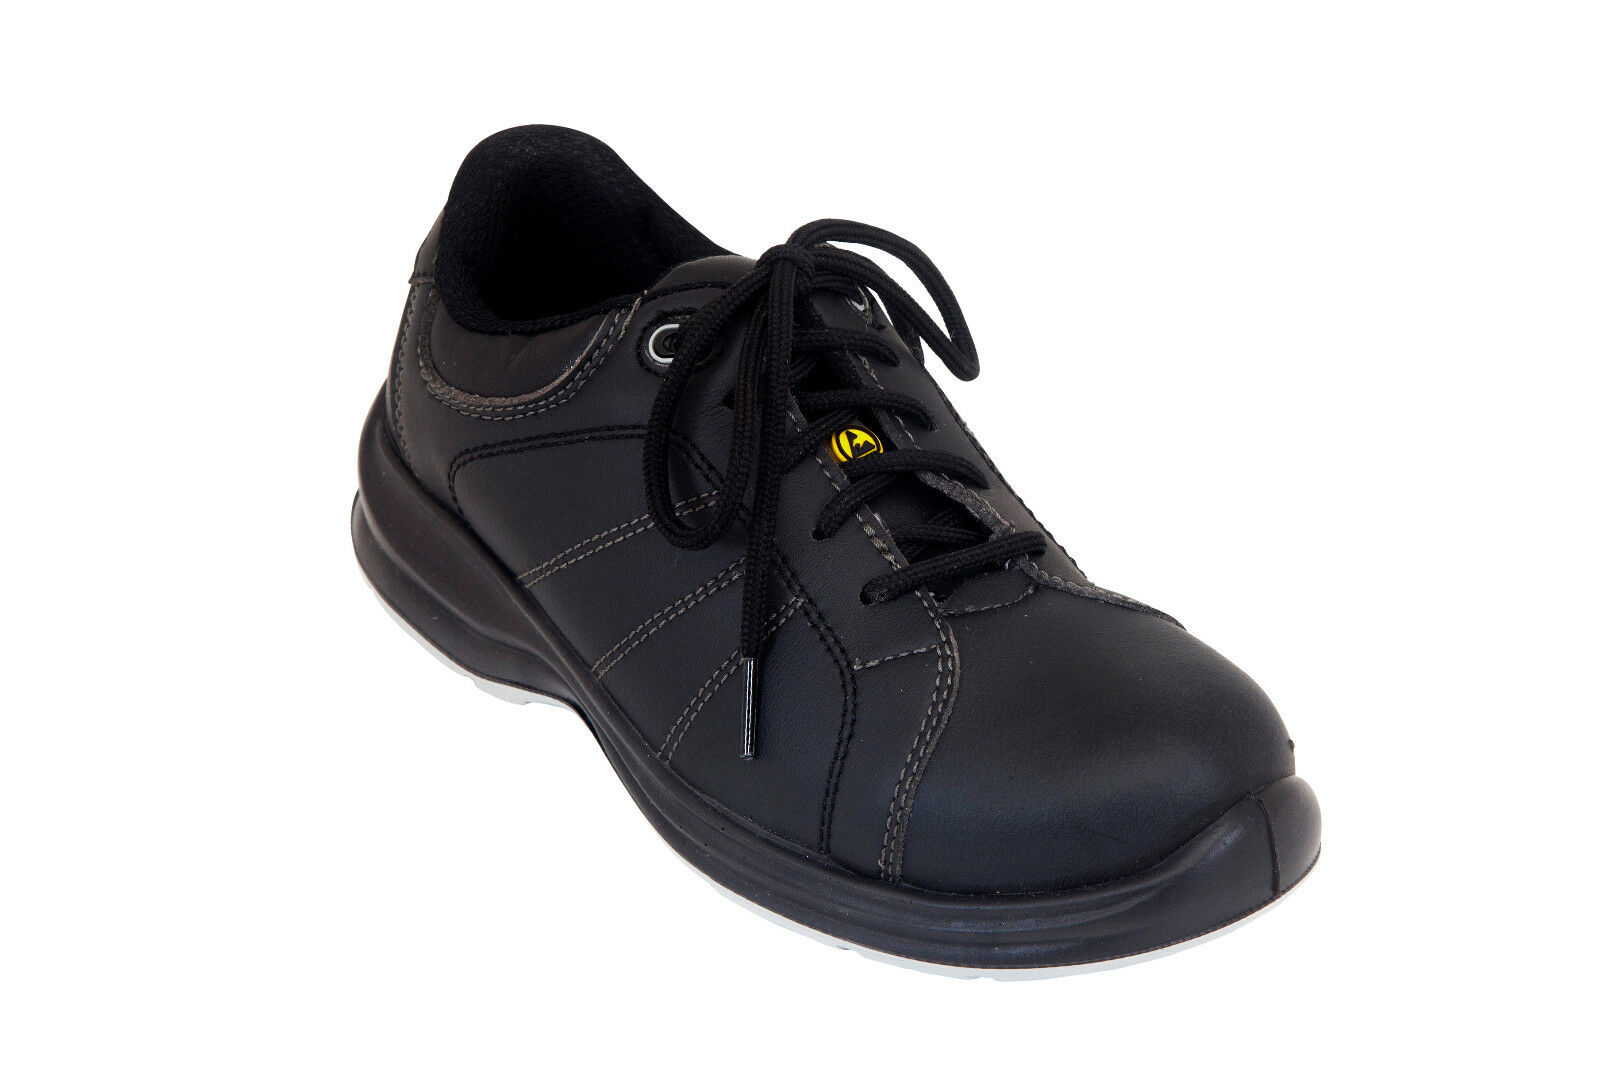 Giasco Malmo Slip-Resistant Italian Imported Leather Work shoes Rubber Sole Black